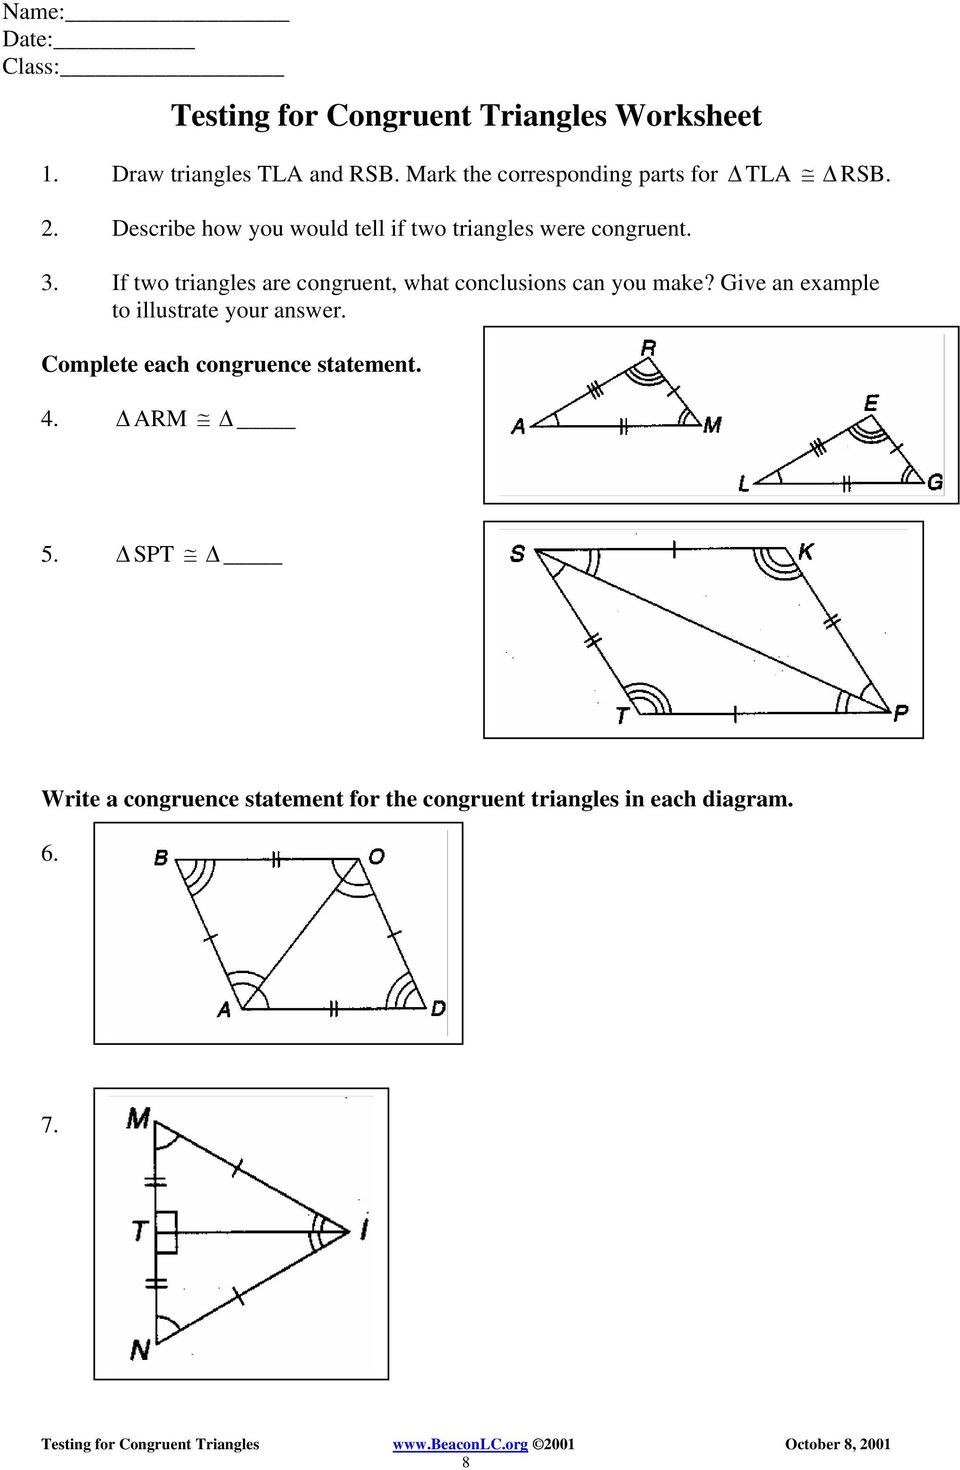 Congruent Triangles Worksheet Answer Key Testing for Congruent Triangles Examples Pdf Free Download